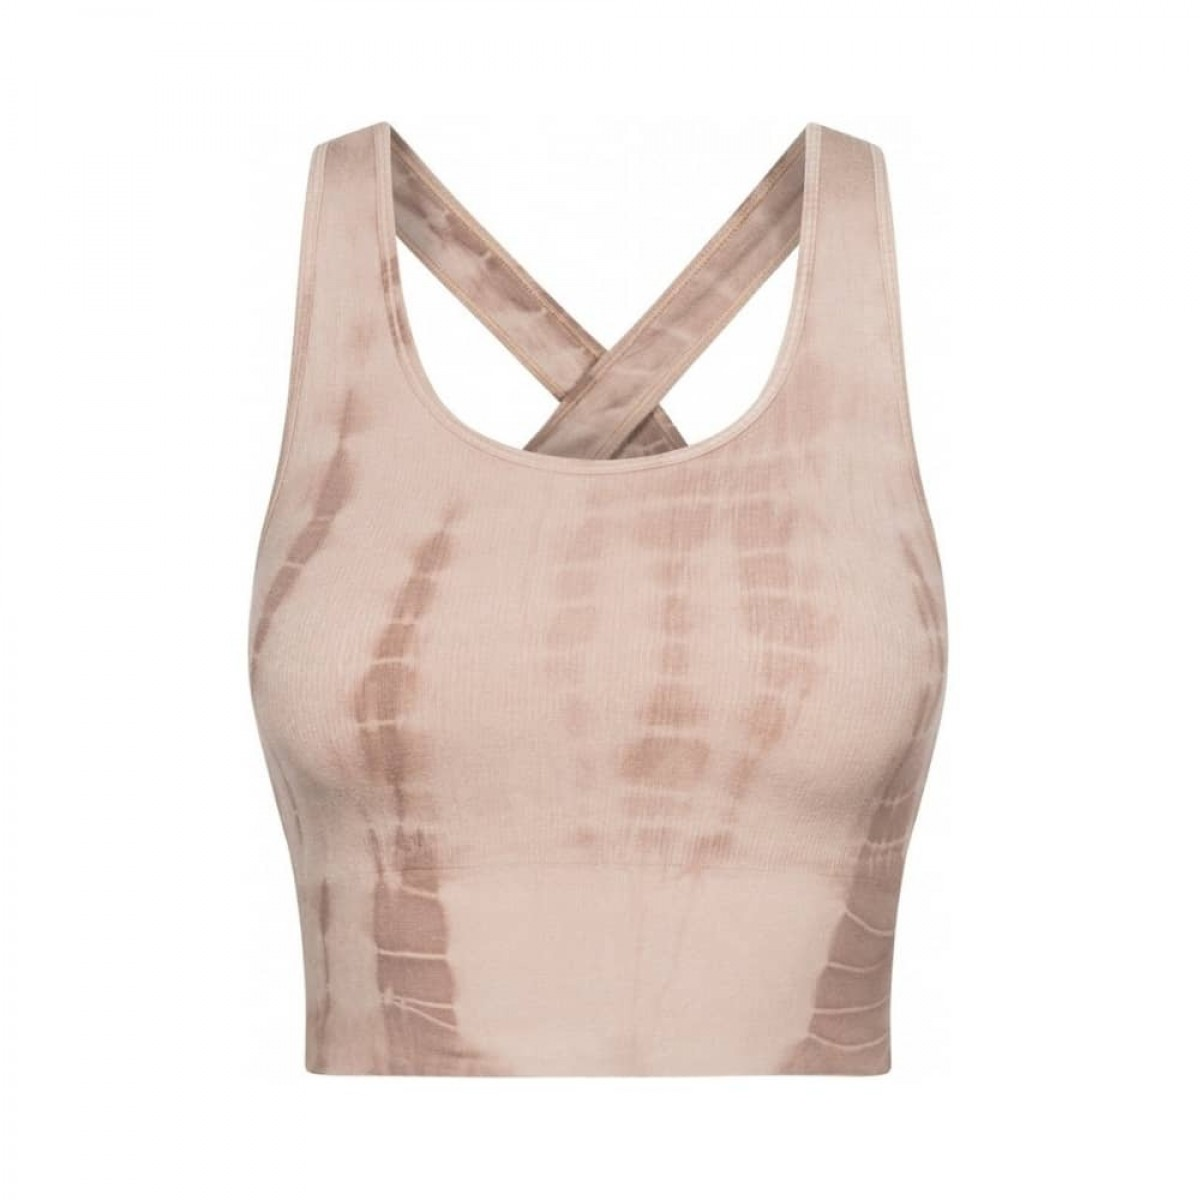 lifa yoga top - coublestone with taupe tie dye